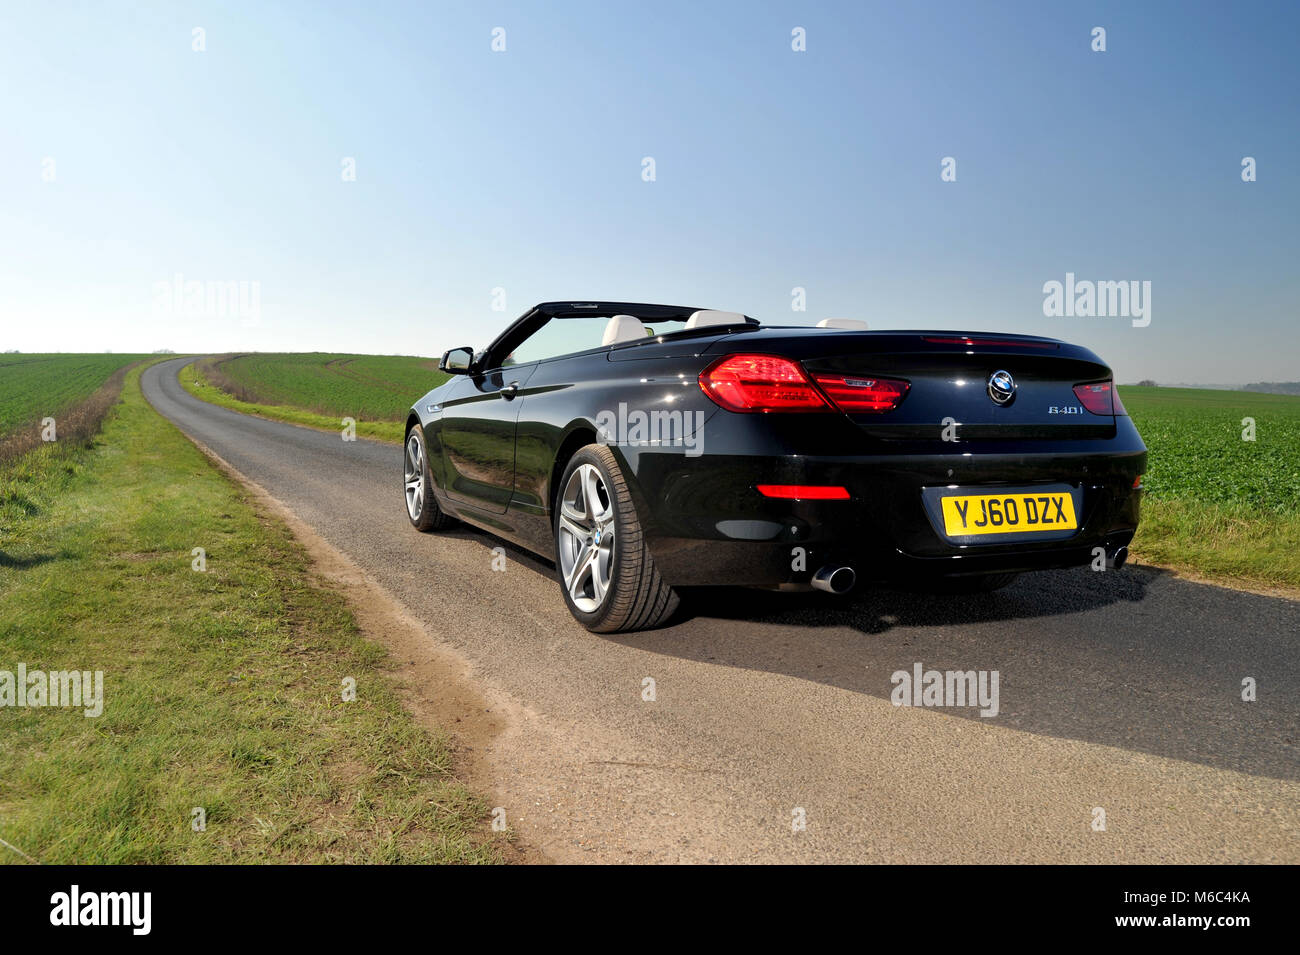 Black Bmw Convertible Stock Photos Amp Black Bmw Convertible Stock Images Alamy